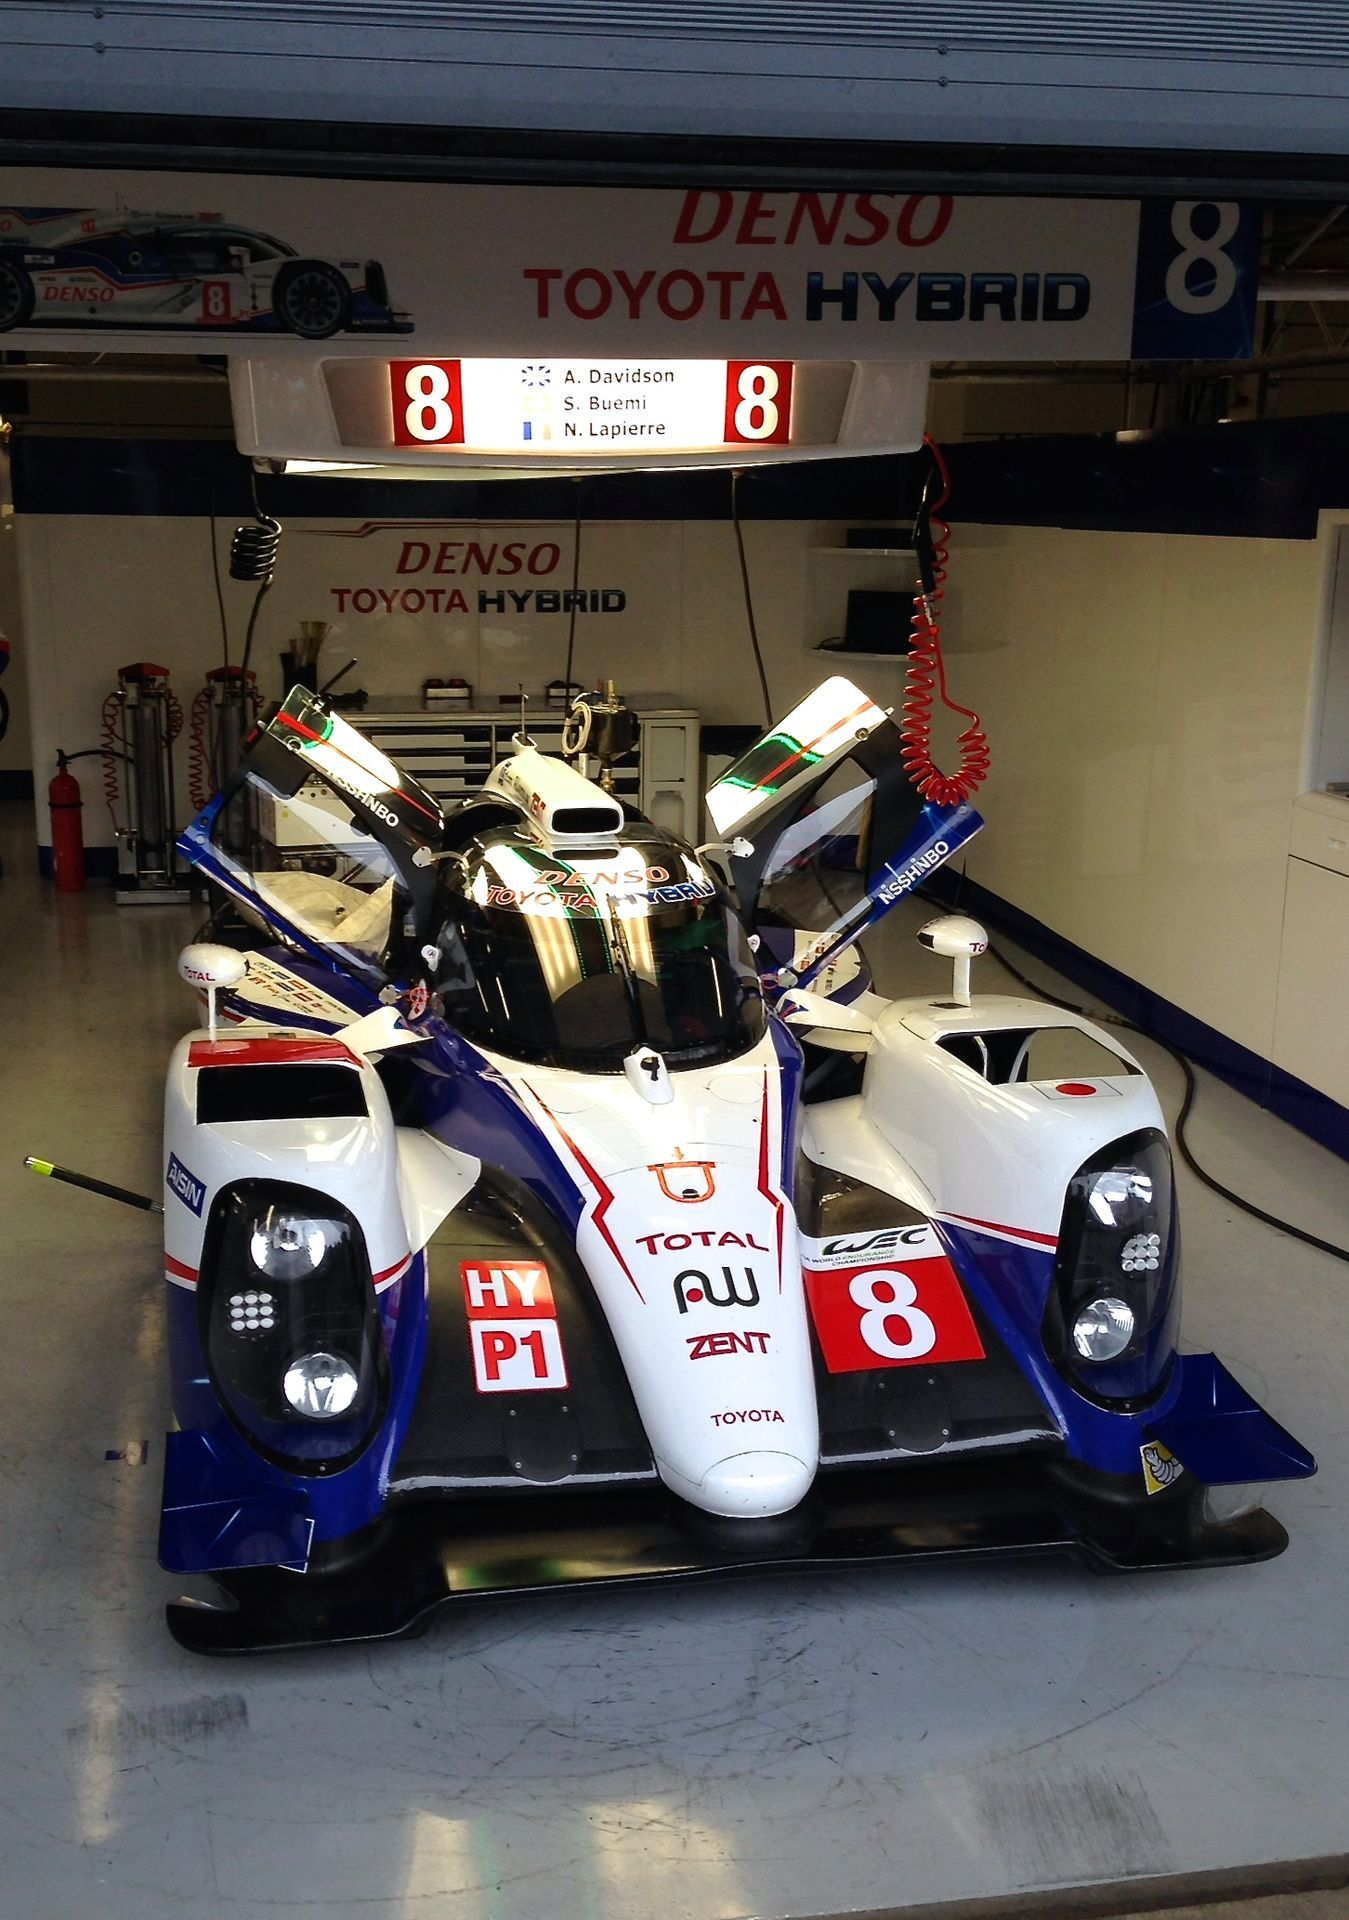 Toyota gazoo racing revealed today the updated ts050 hybrid race car which will carry its hopes in the 2017 fia world endurance championship wec